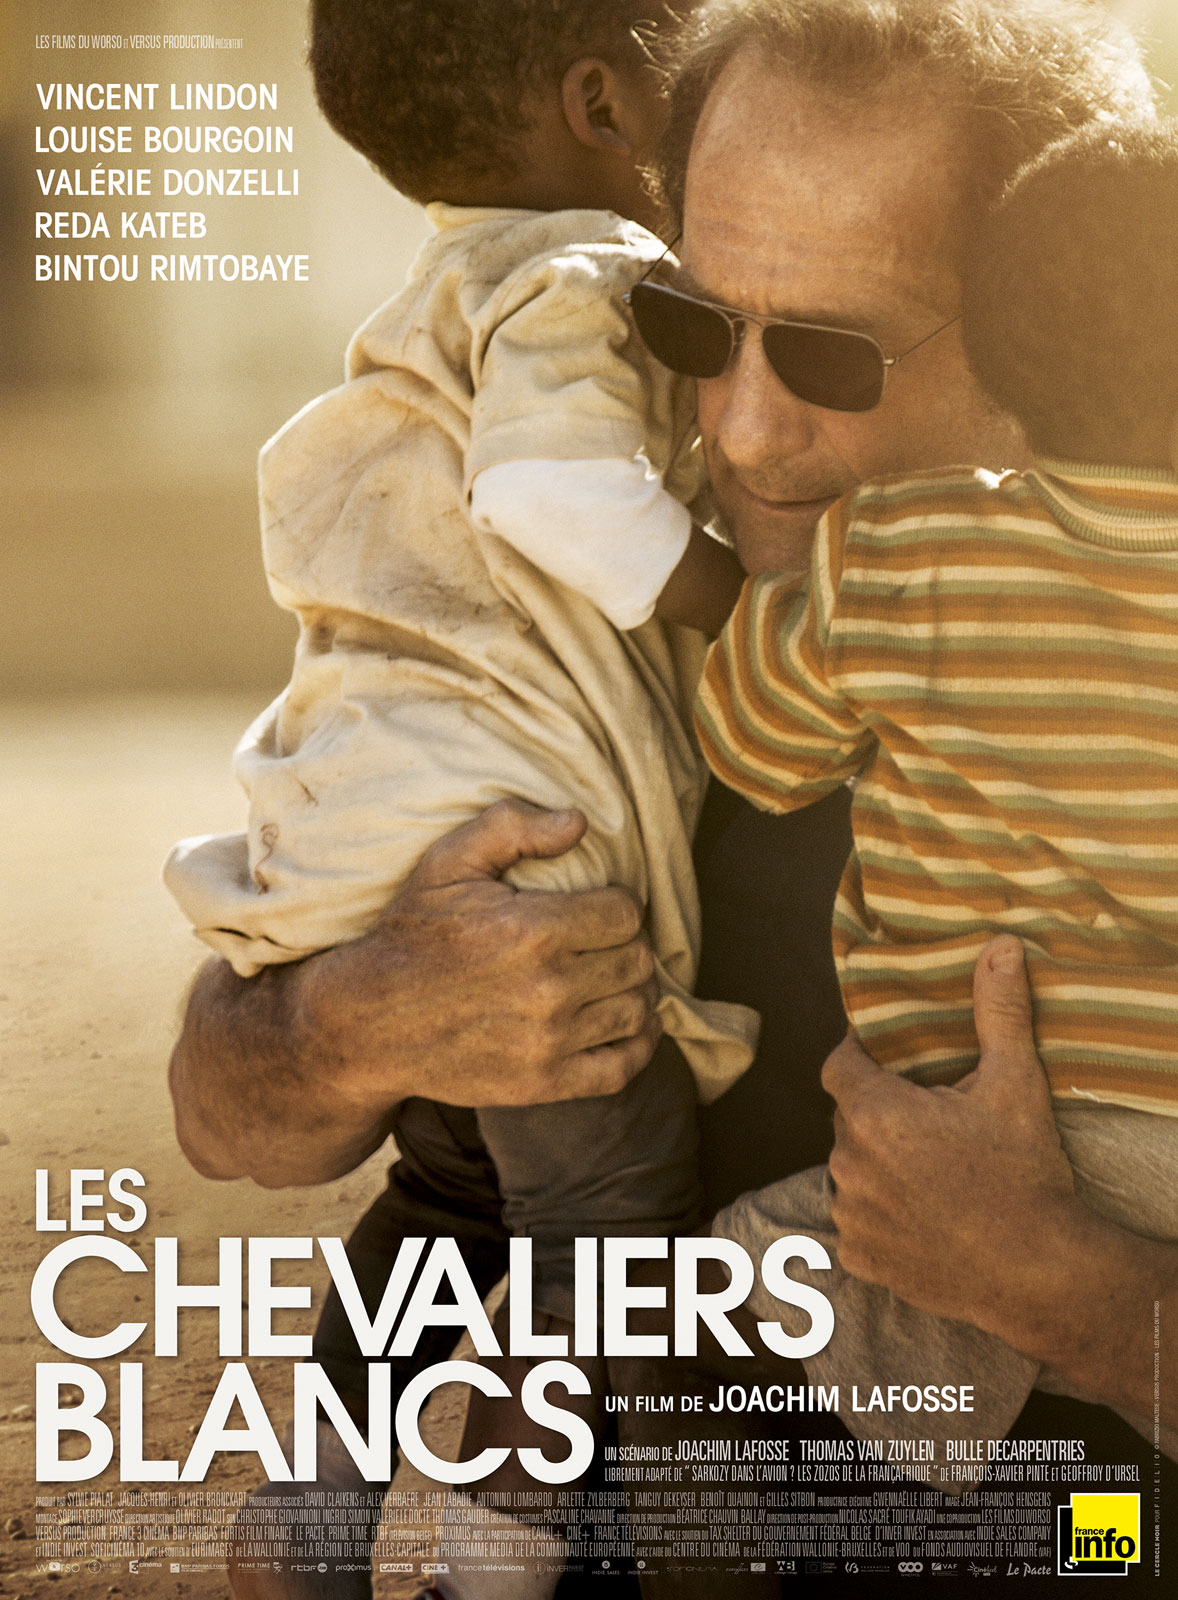 Filme Rayman for les chevaliers blancs - film 2015 - allociné